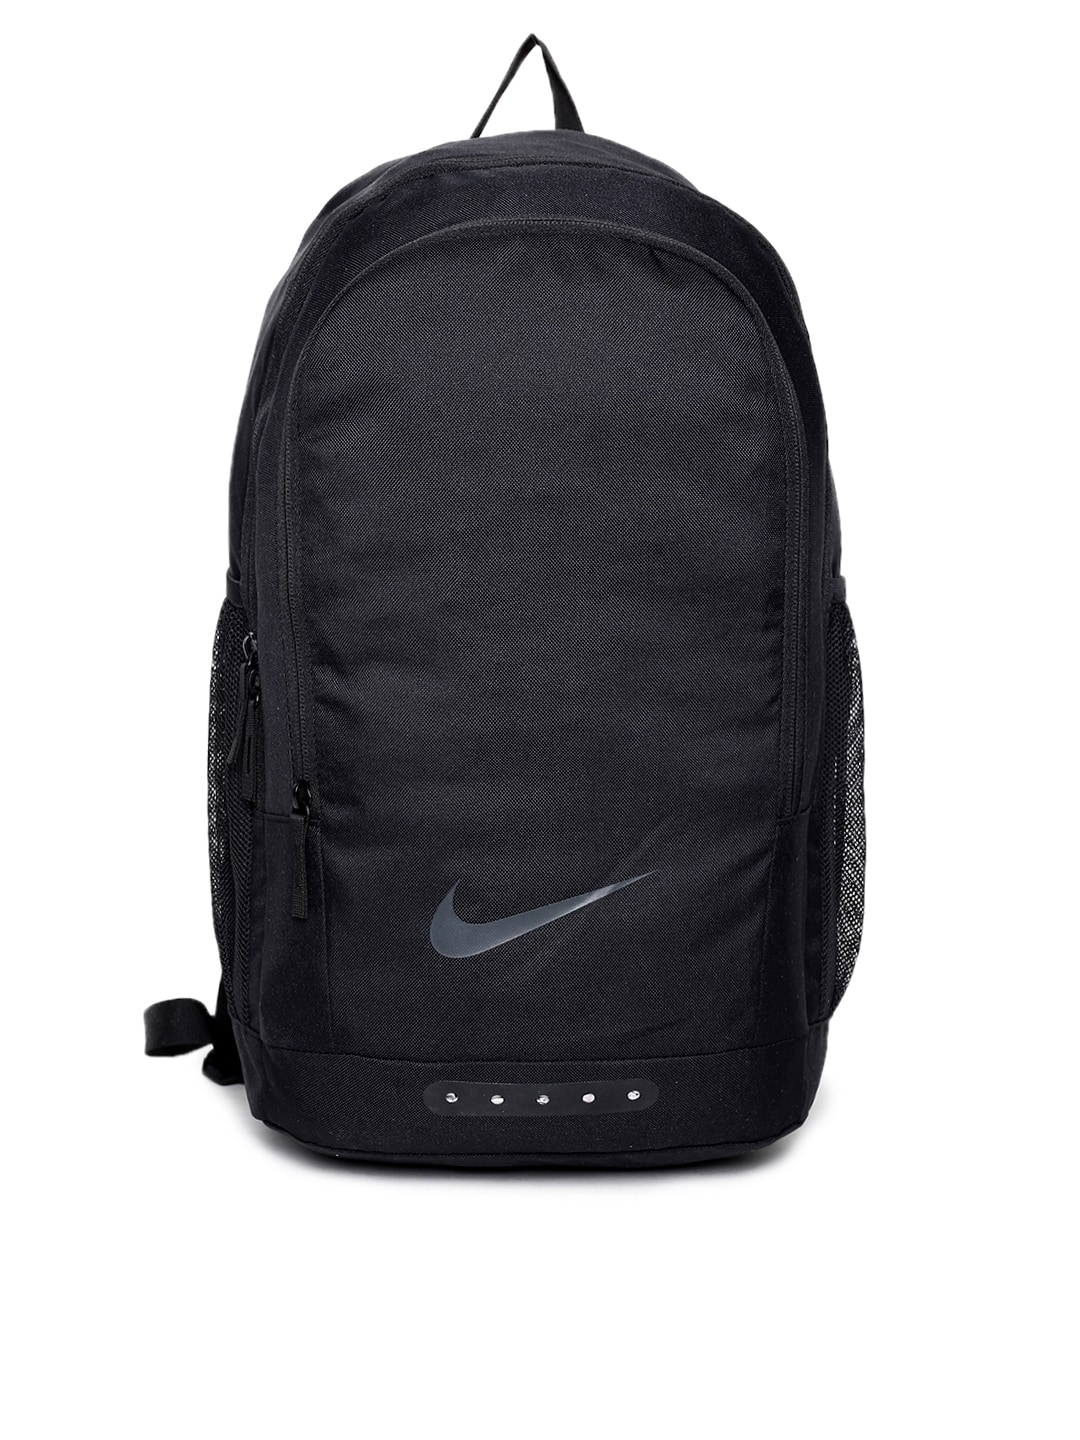 7a2de841e Nike Football Jackets Backpacks - Buy Nike Football Jackets Backpacks  online in India